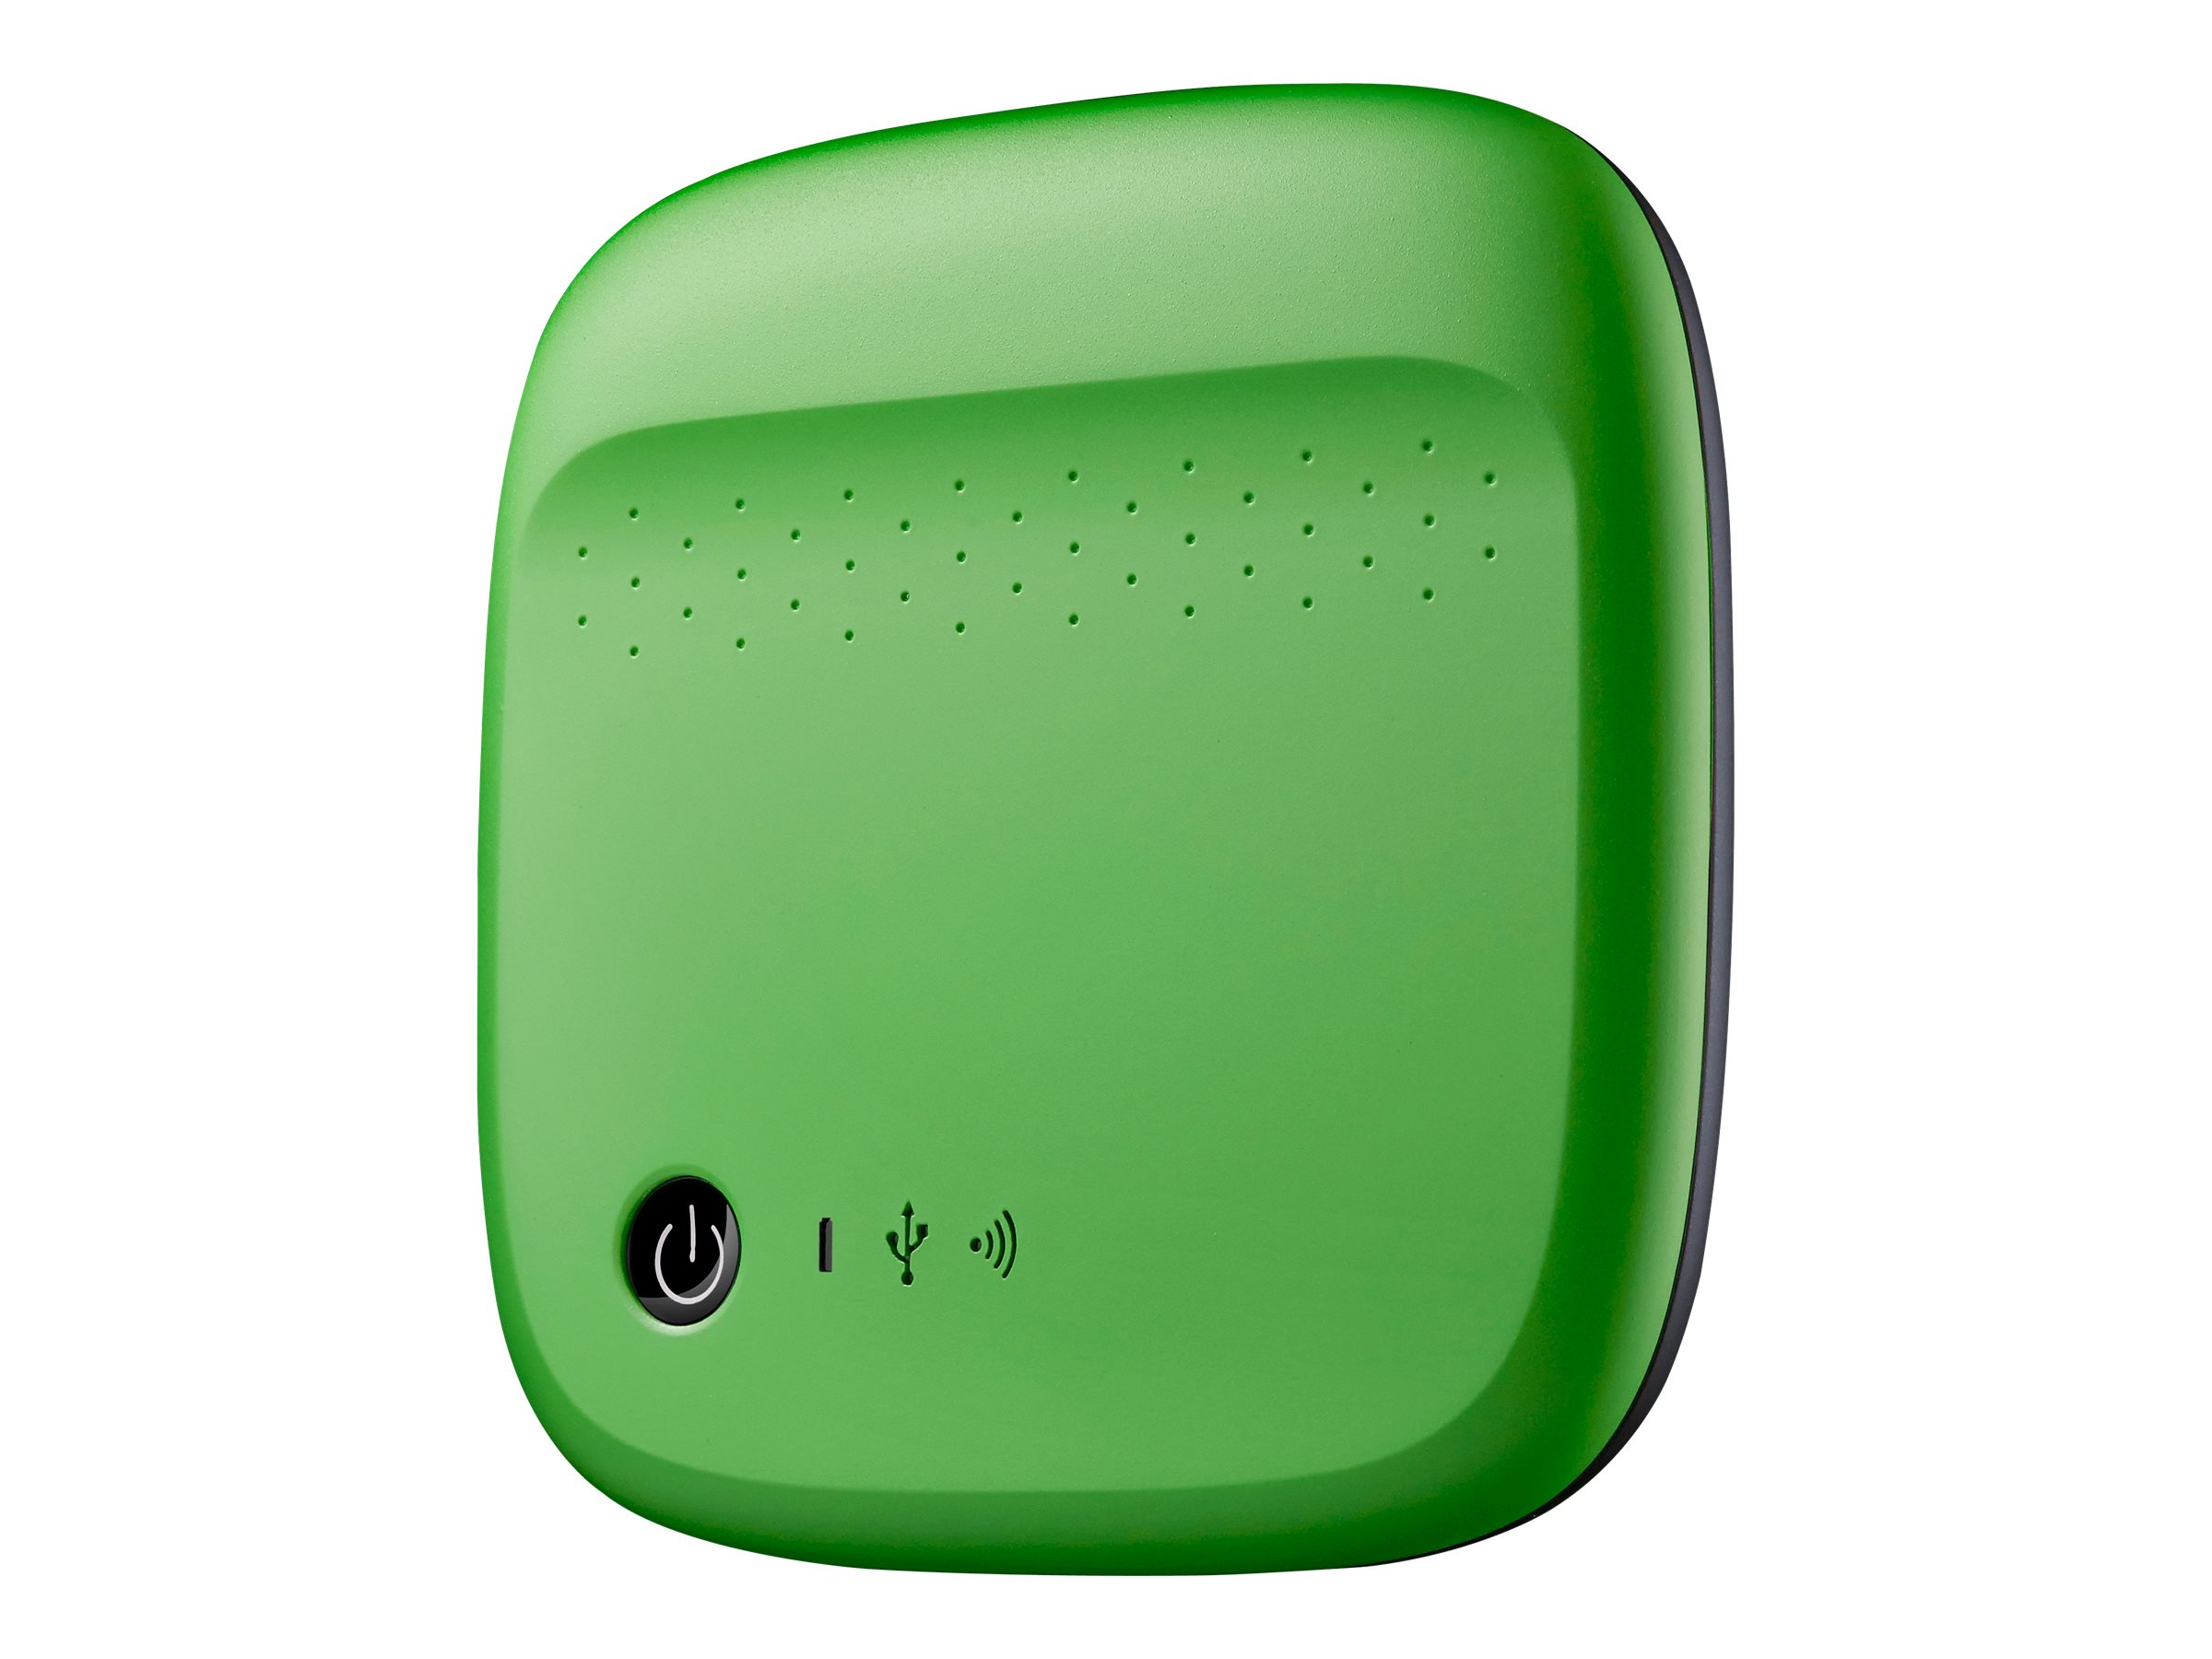 Seagate 500GB Wireless Mobile Device Storage for 2.5 USB 2.0 External Hard Drive, Green